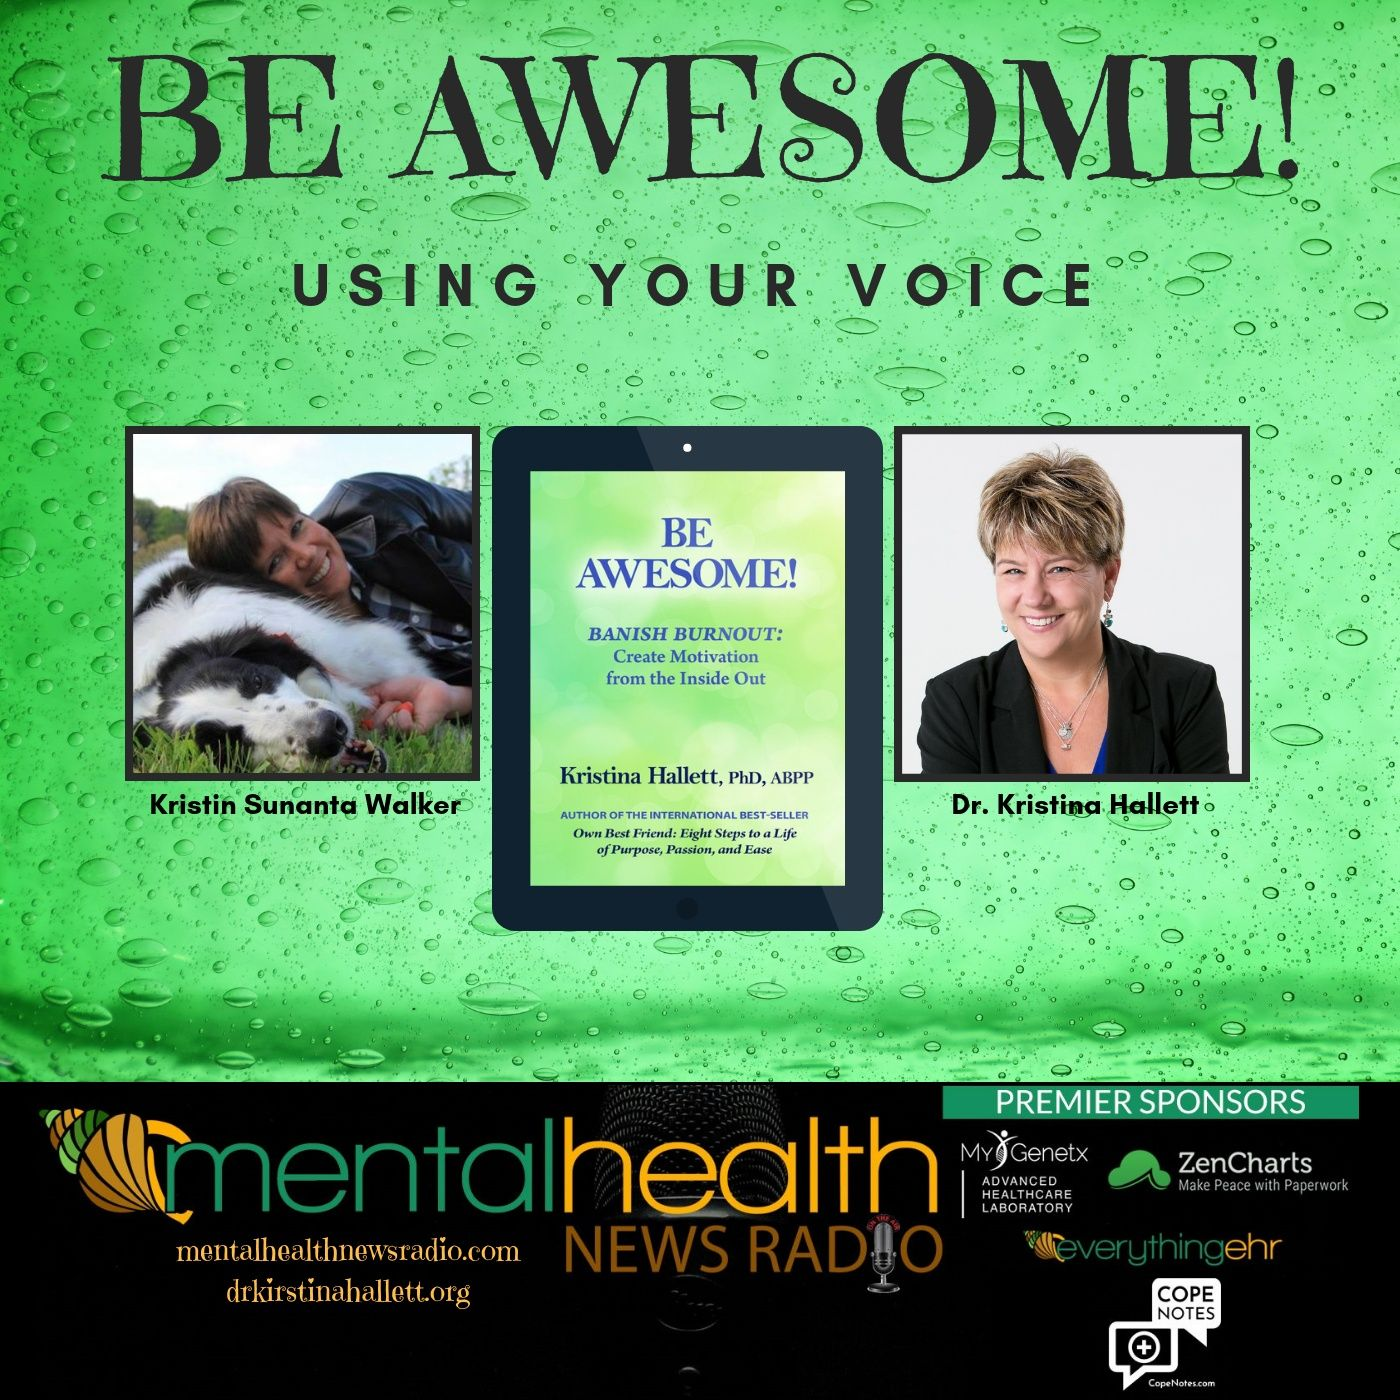 Mental Health News Radio - Be Awesome: Using Your Voice with Dr. Kristina Hallett